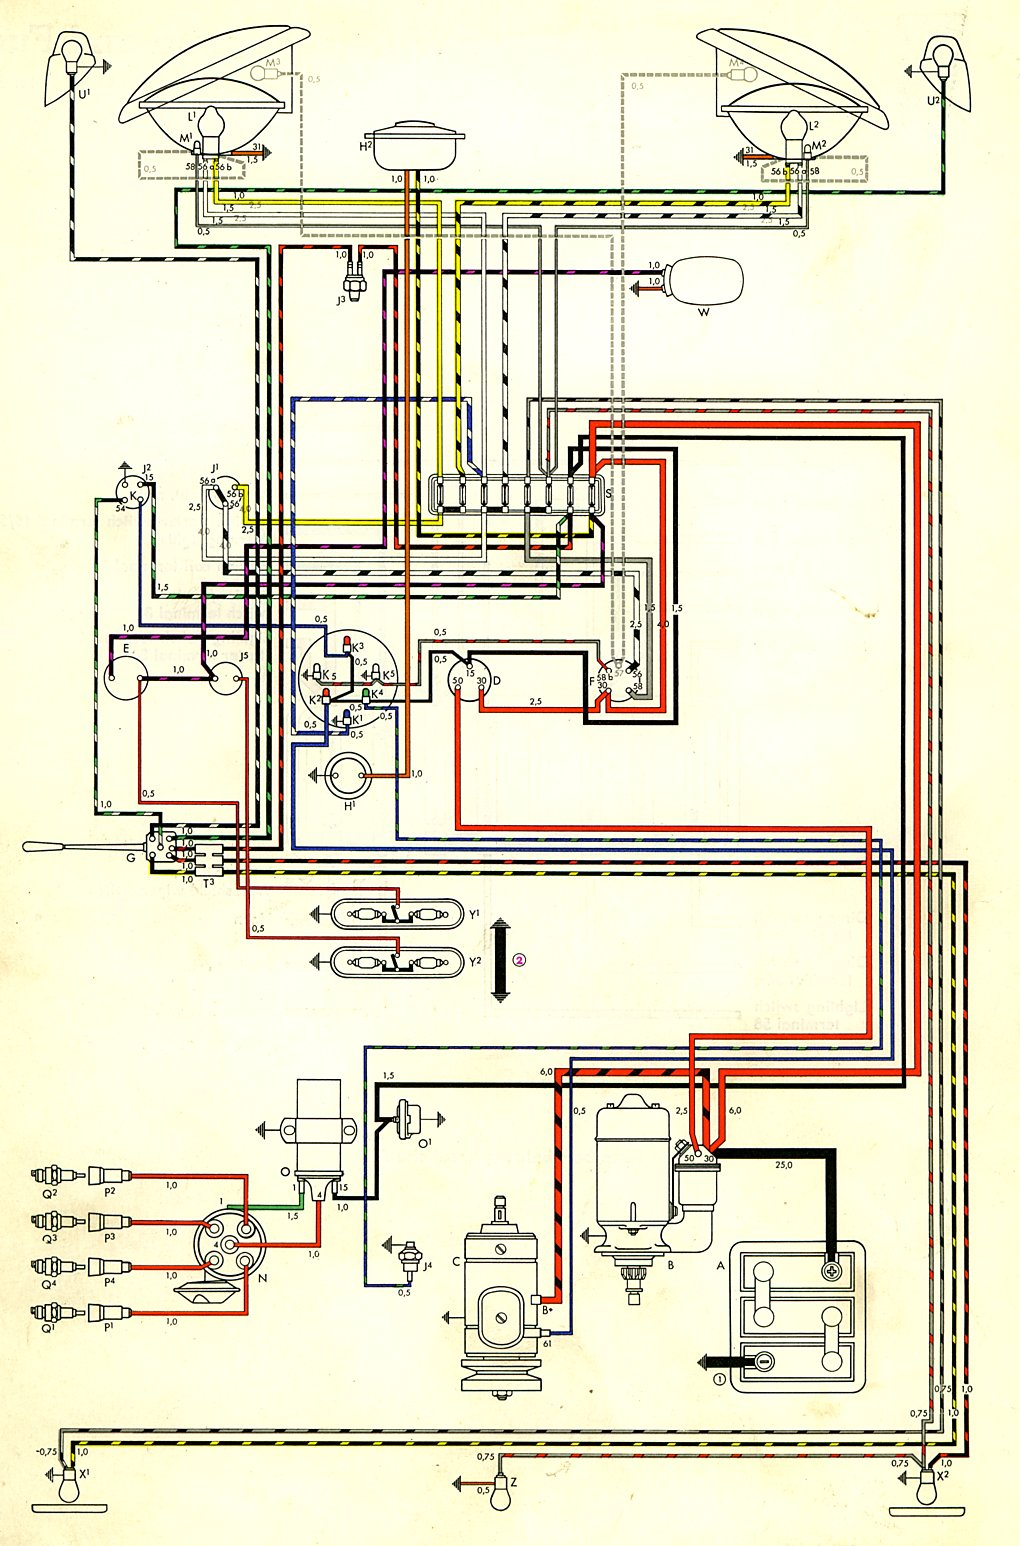 1969 Vw Engine Diagram Wiring Will Be A Thing 1955 Cadillac Vacuum 78 Bus Type 4